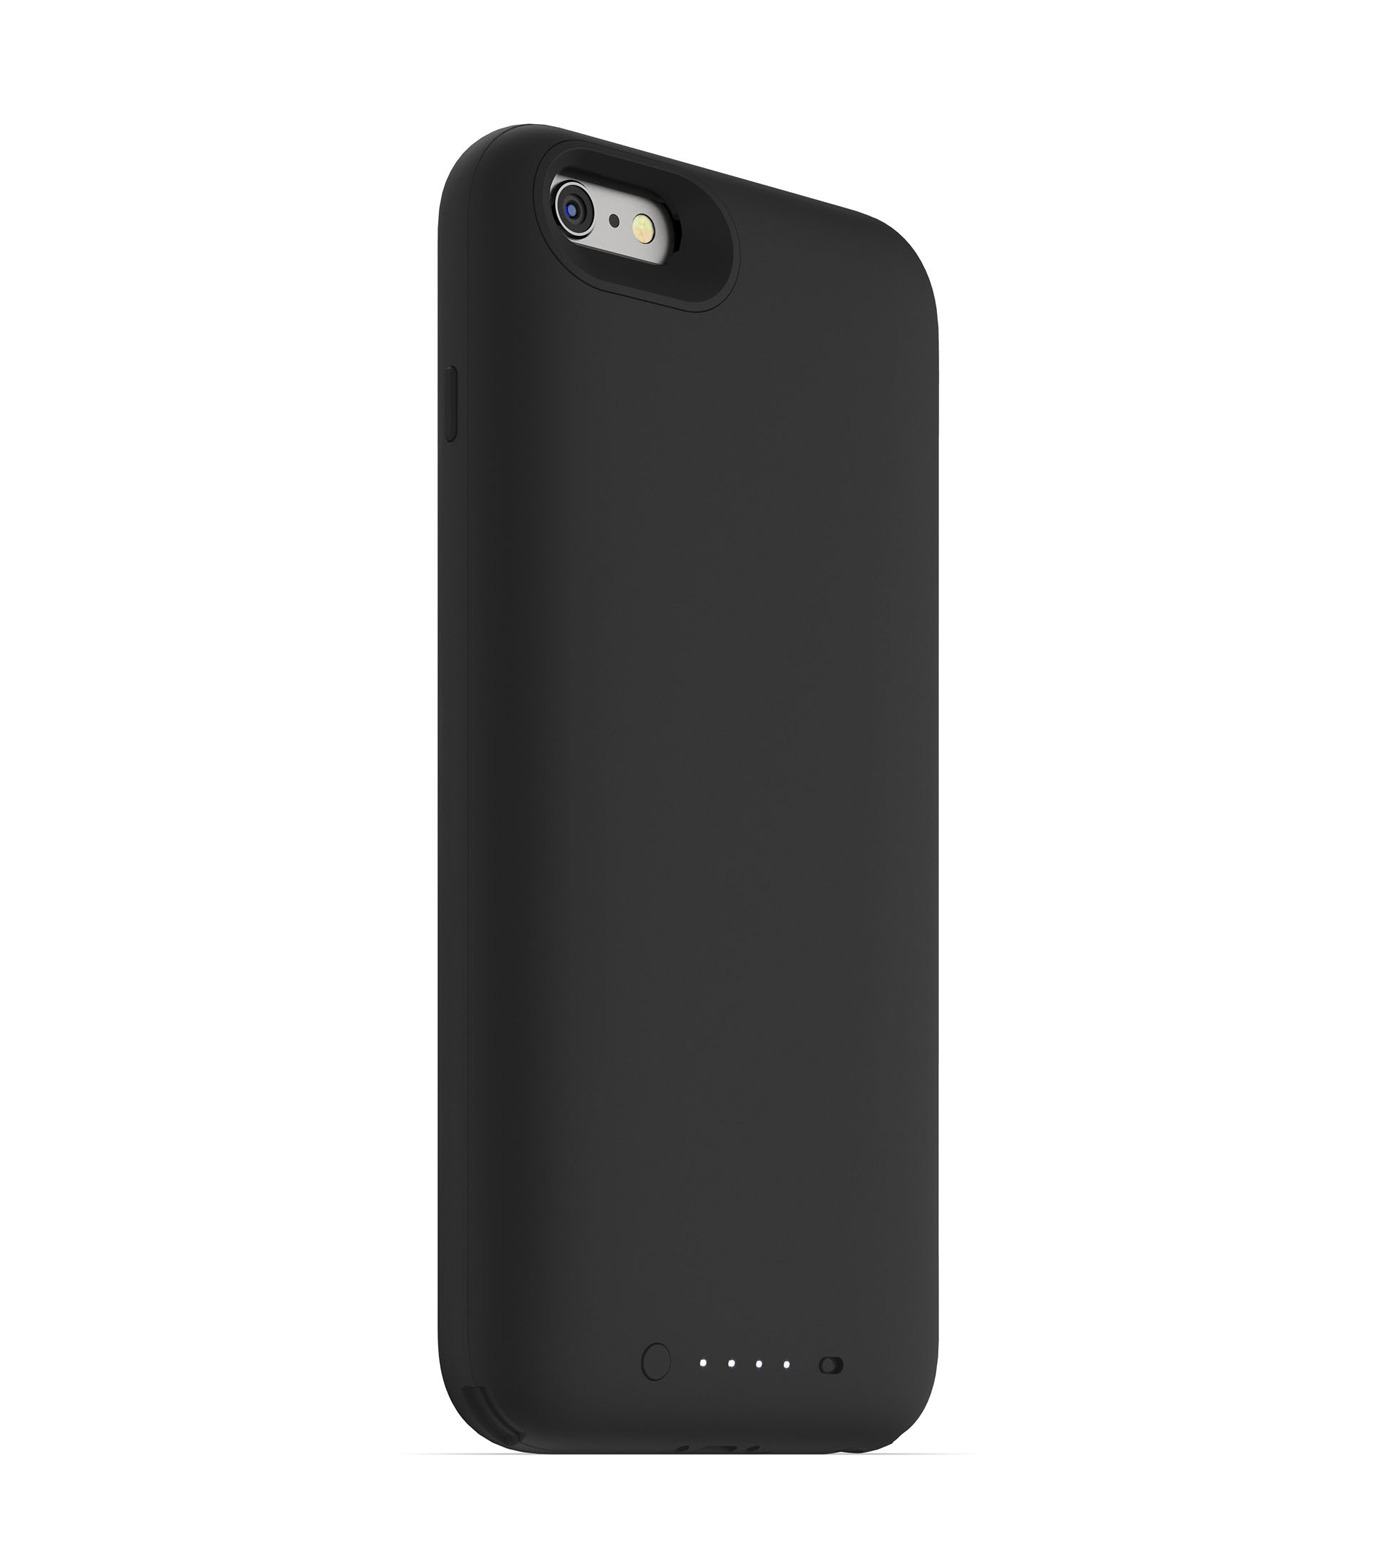 Mophie(モーフィー)のmophie juice pack wireless for iPhone6 Plus-BLACK(ケースiphone6plus/6splus/case iphone6plus/6splus)-MOP-PH-0144-13 拡大詳細画像1